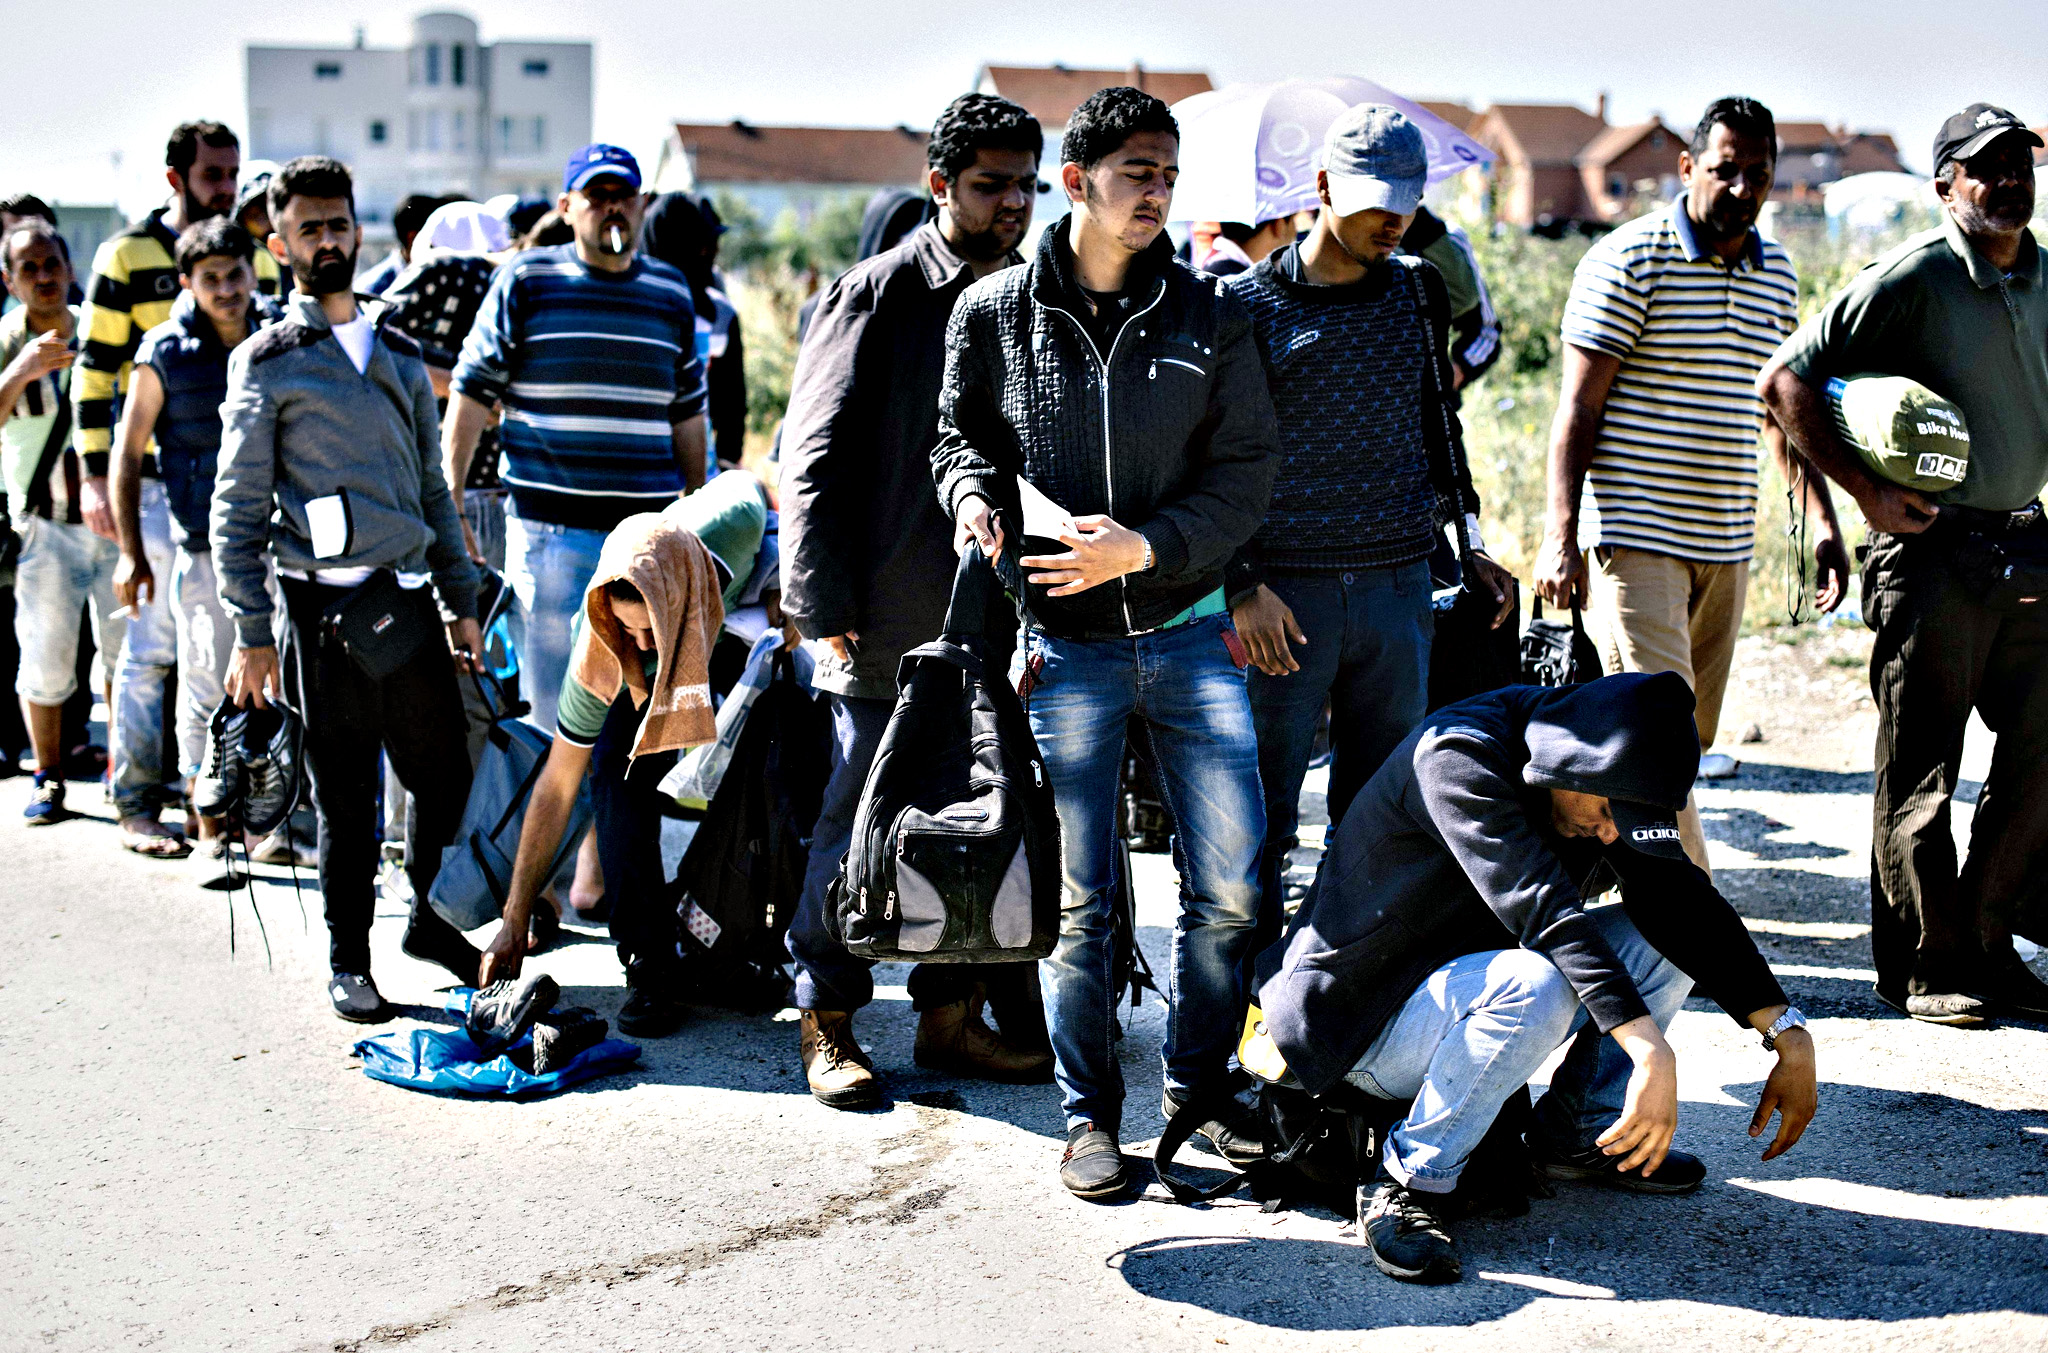 Migrants stand in a queue near the police station in the southern Serbian town of Presevo, near the border with Macedonia, on Thursday. Illegal immigrants cross Serbia on their way to other European countries as it has land access to three members of the 28-nation bloc -- Romania, Hungary and Croatia. This year, more than 50,000 migrants tried to cross into Hungary via Serbia between January 1 and May 31 -- representing an 880-percent increase compared to the same period in 2014, according to the EU's Frontex border agency